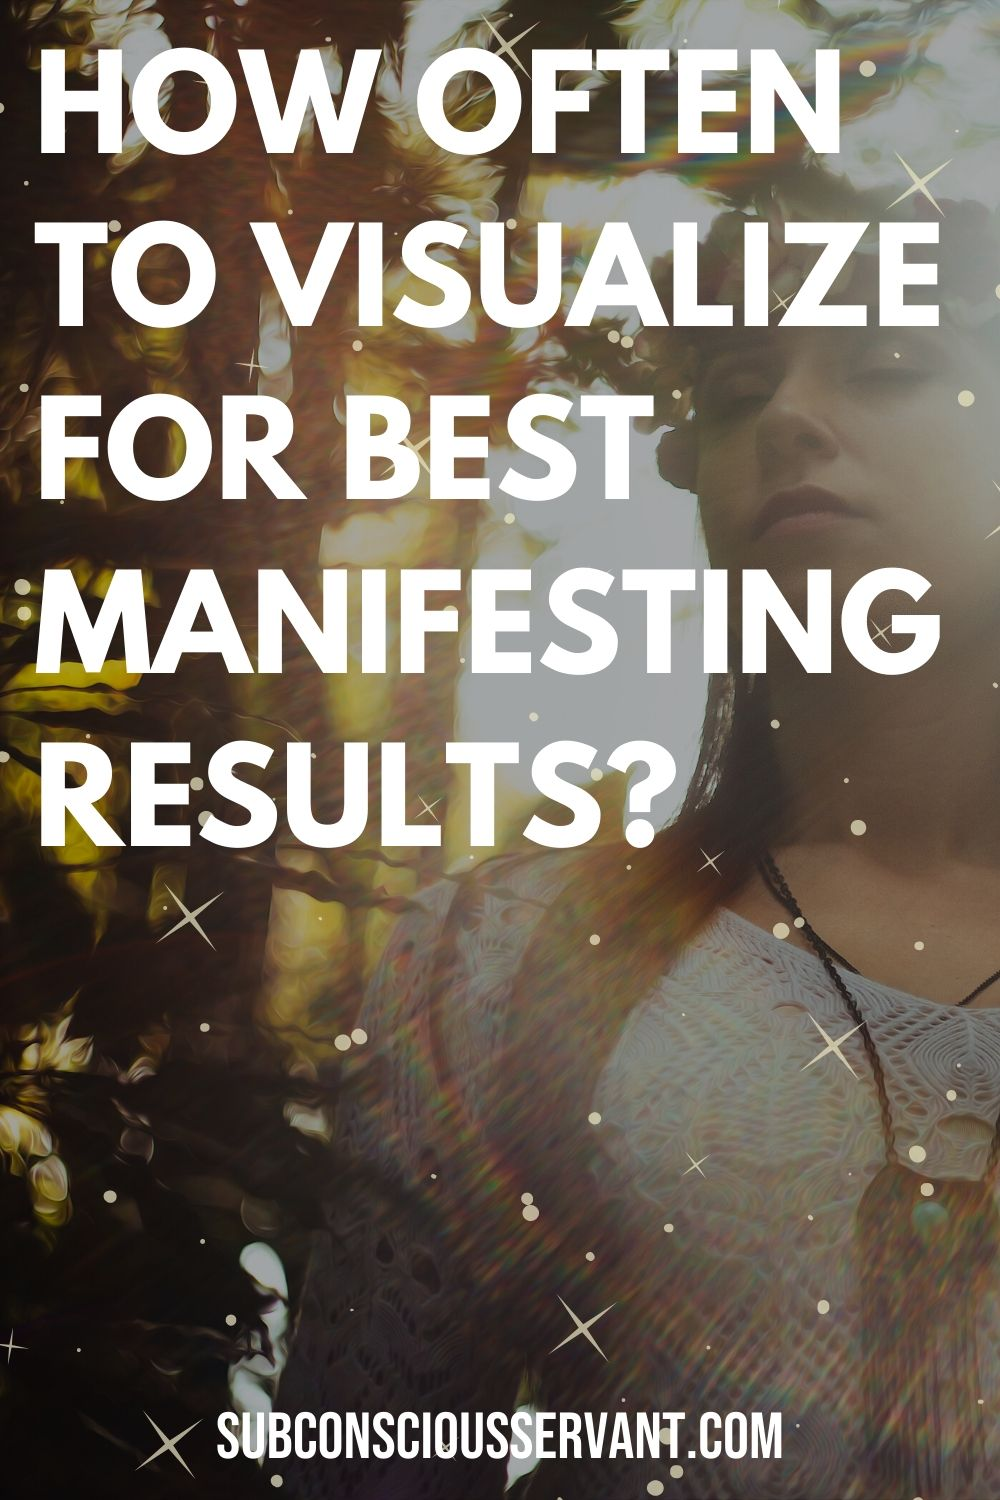 How Often You Should Visualize For Best Manifesting Results